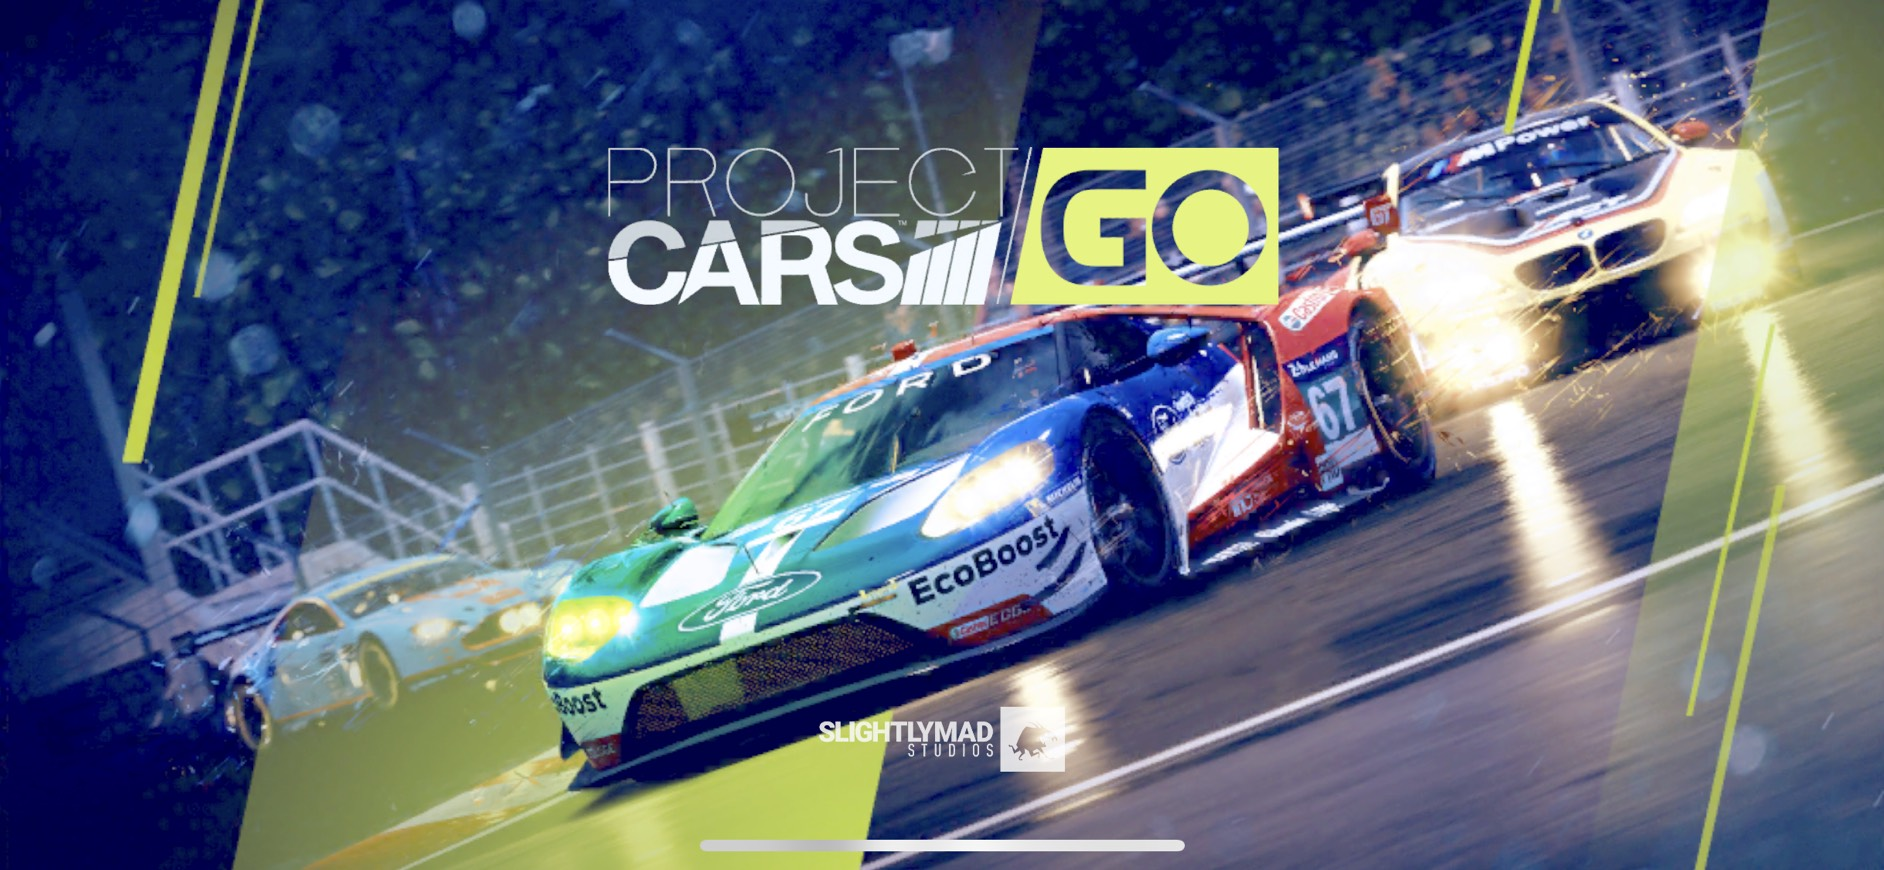 Mobile Project Cars Go will be released worldwide on March 23